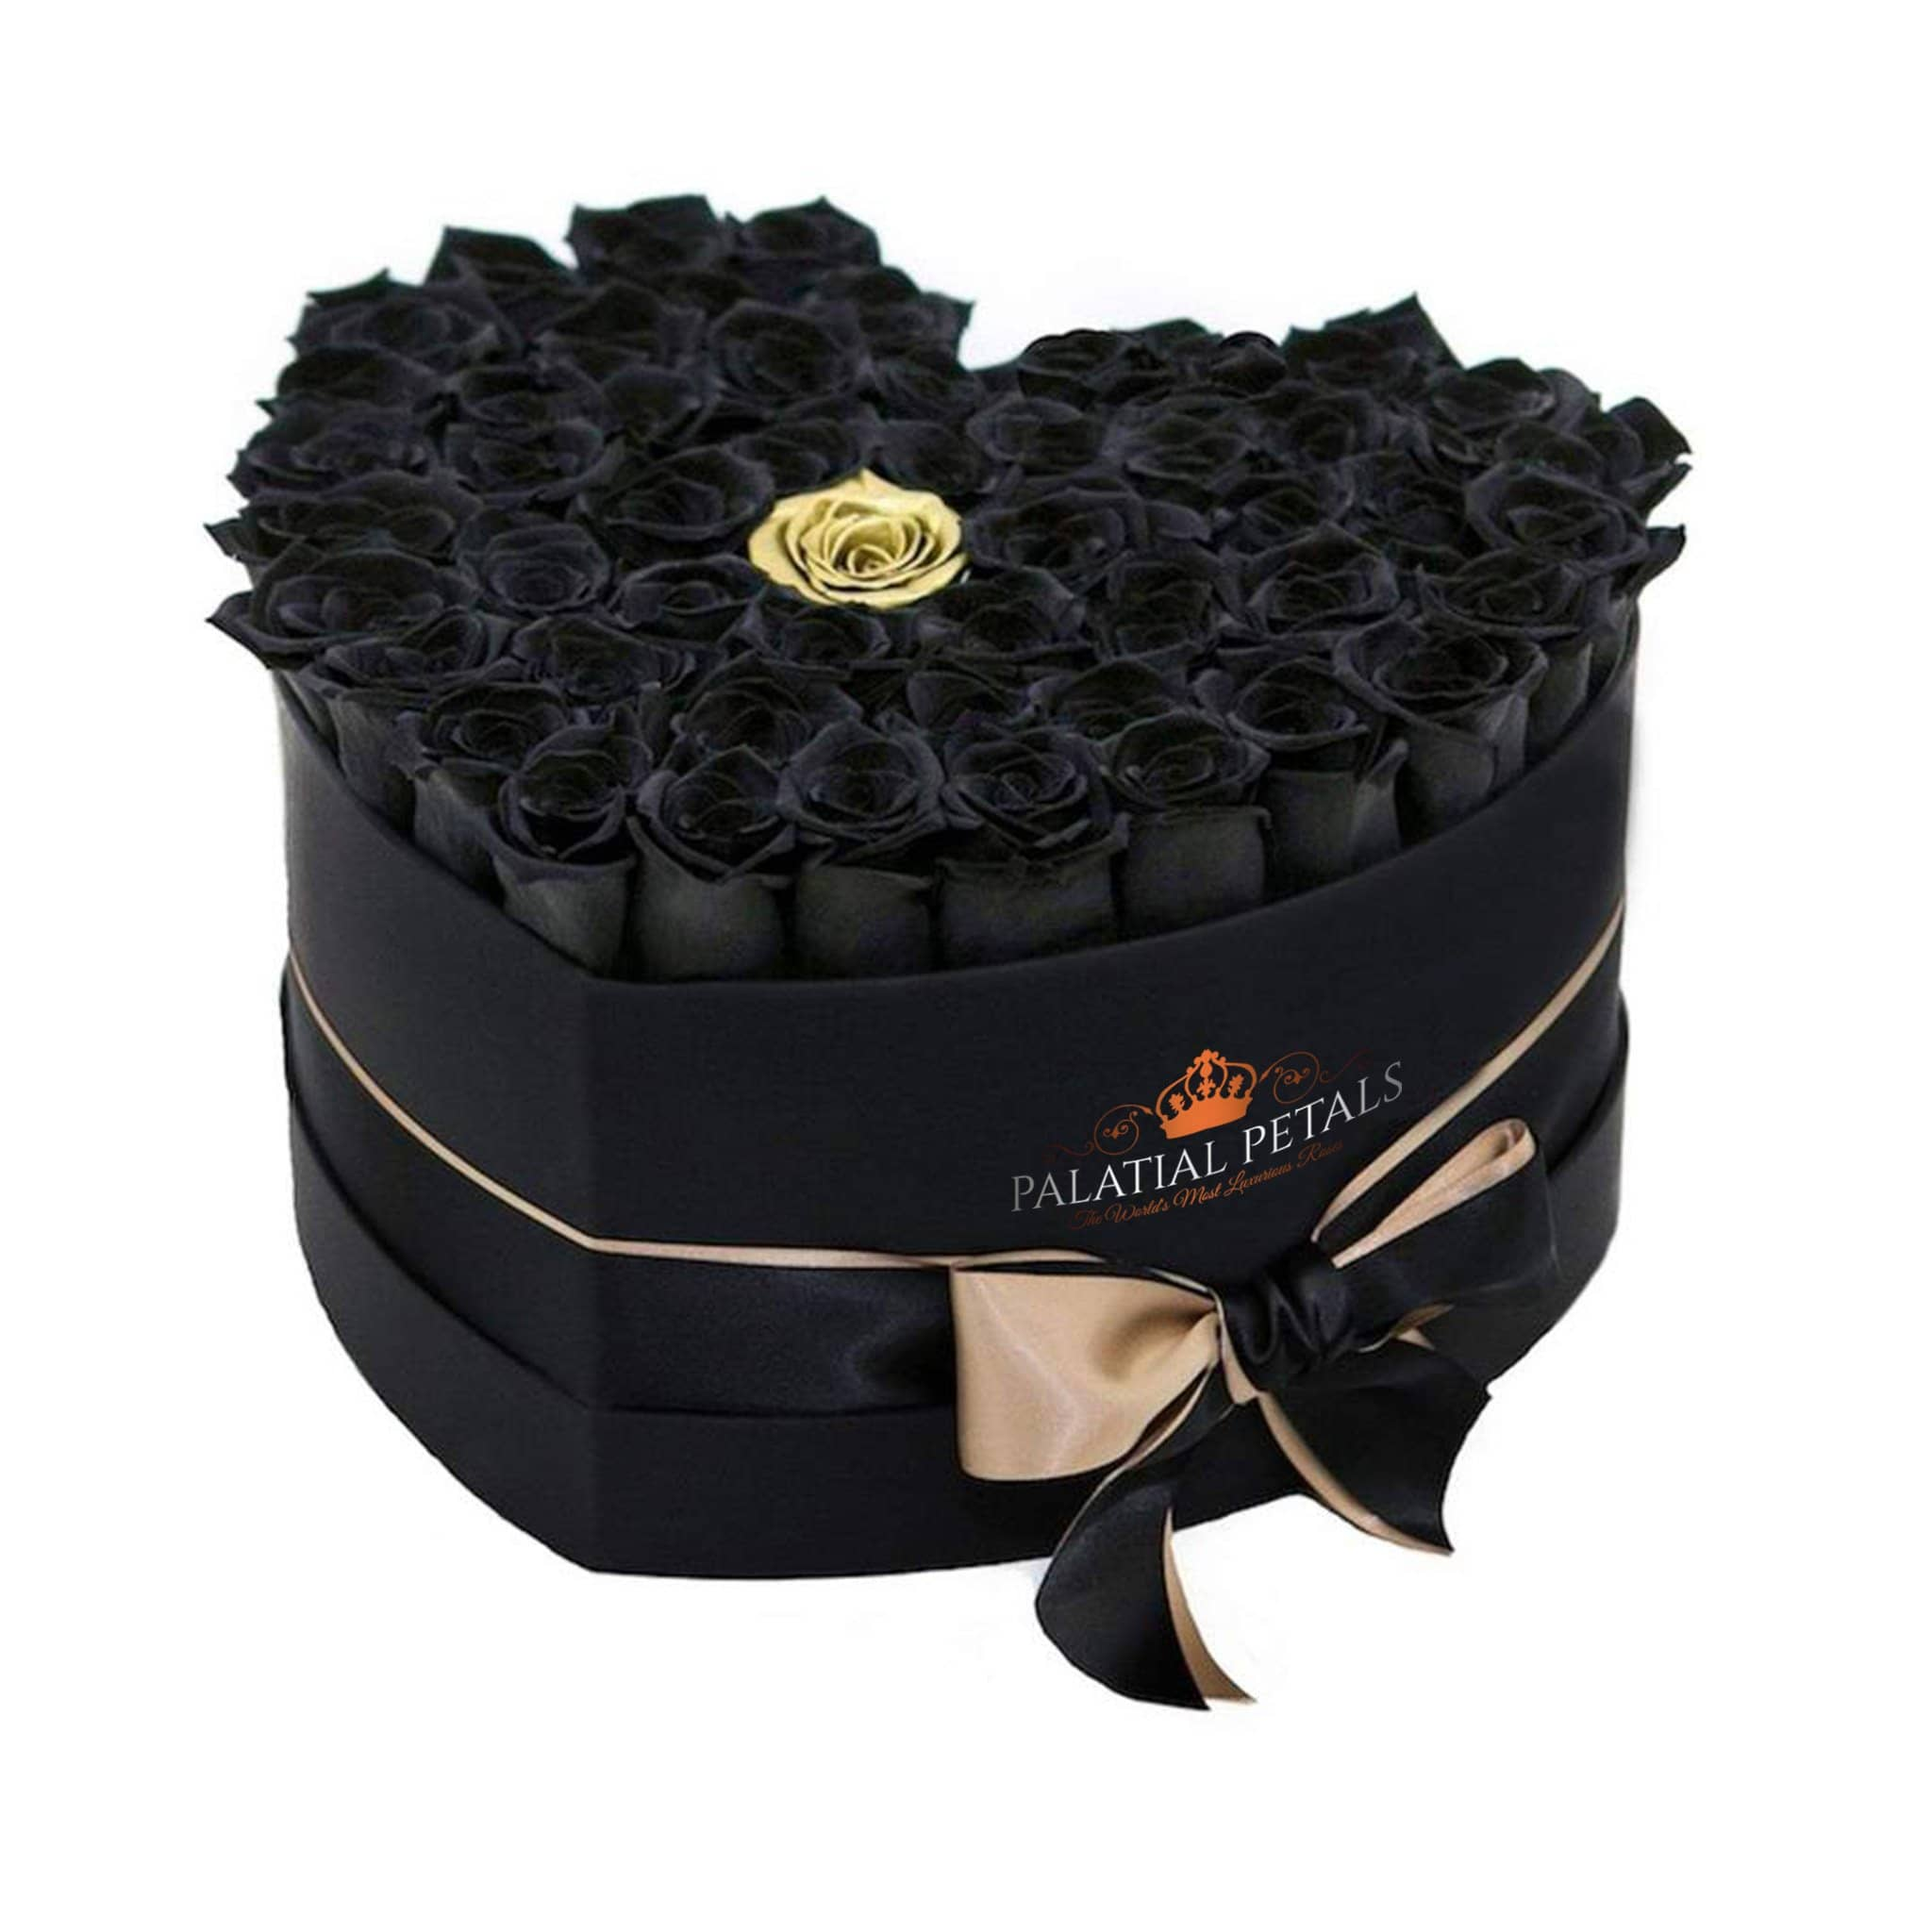 Black & Gold Roses That Last A Year - Love Heart Rose Box